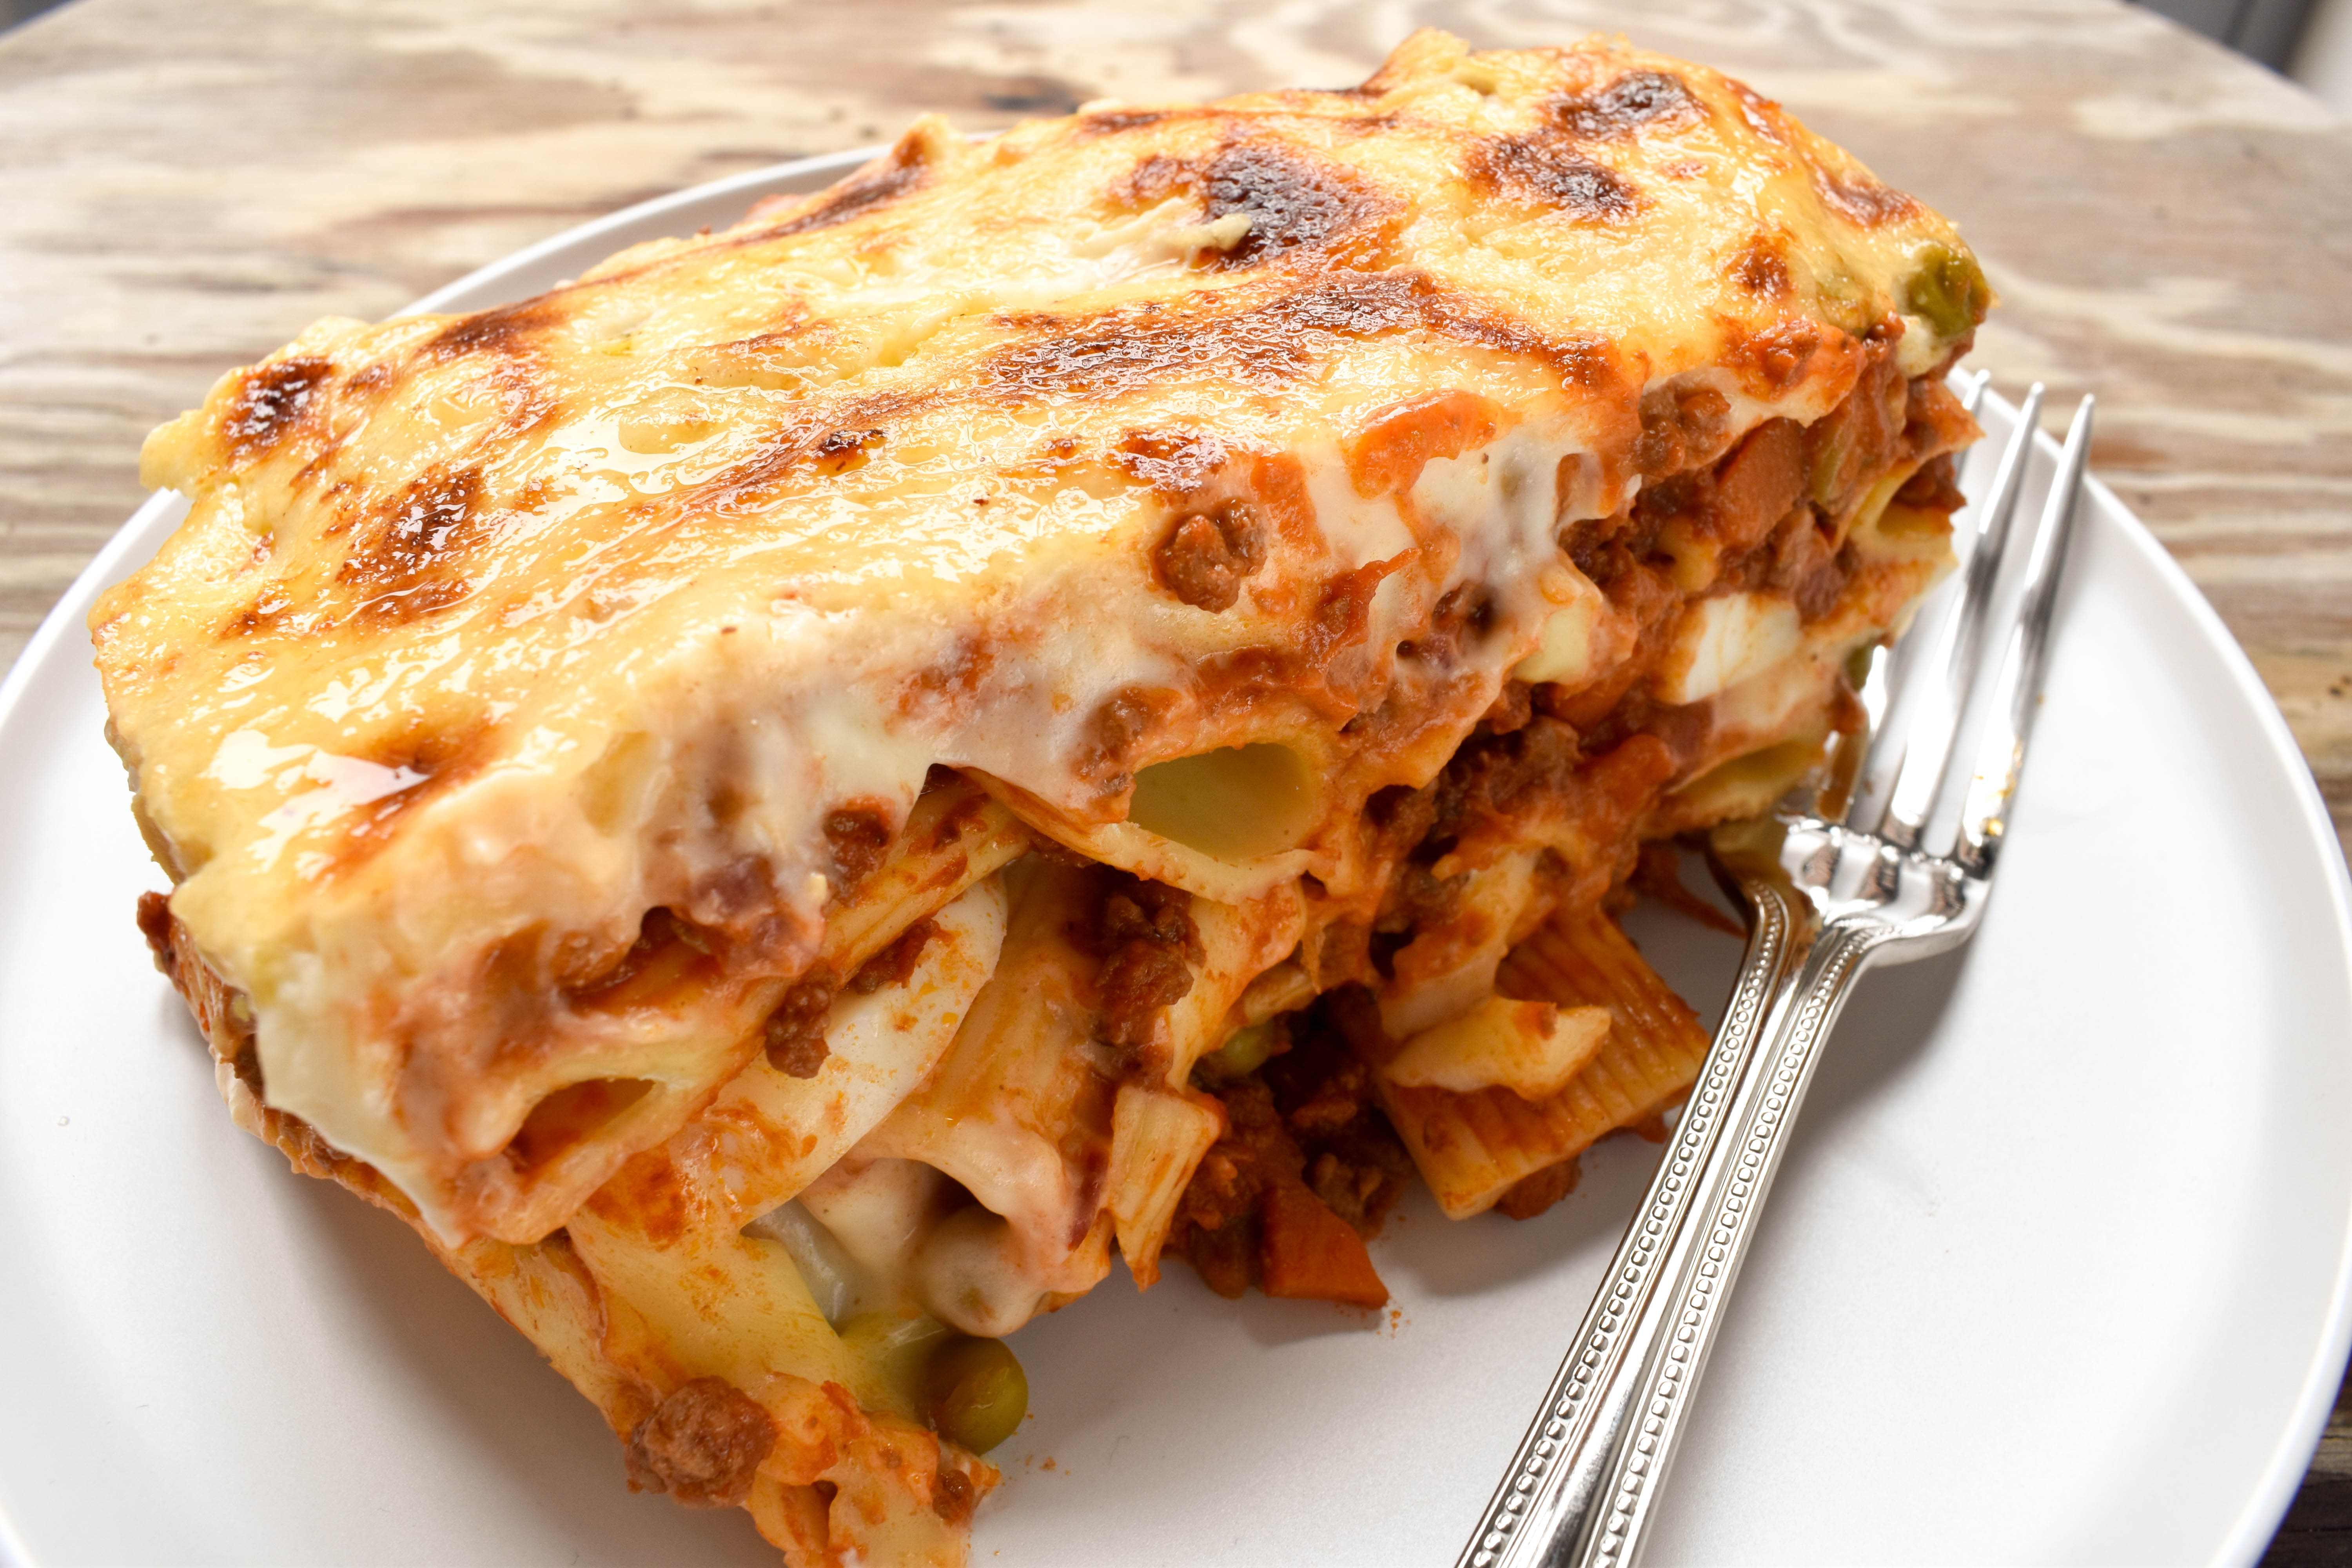 Top 5 Pasta al forno (pasta bake) recipes